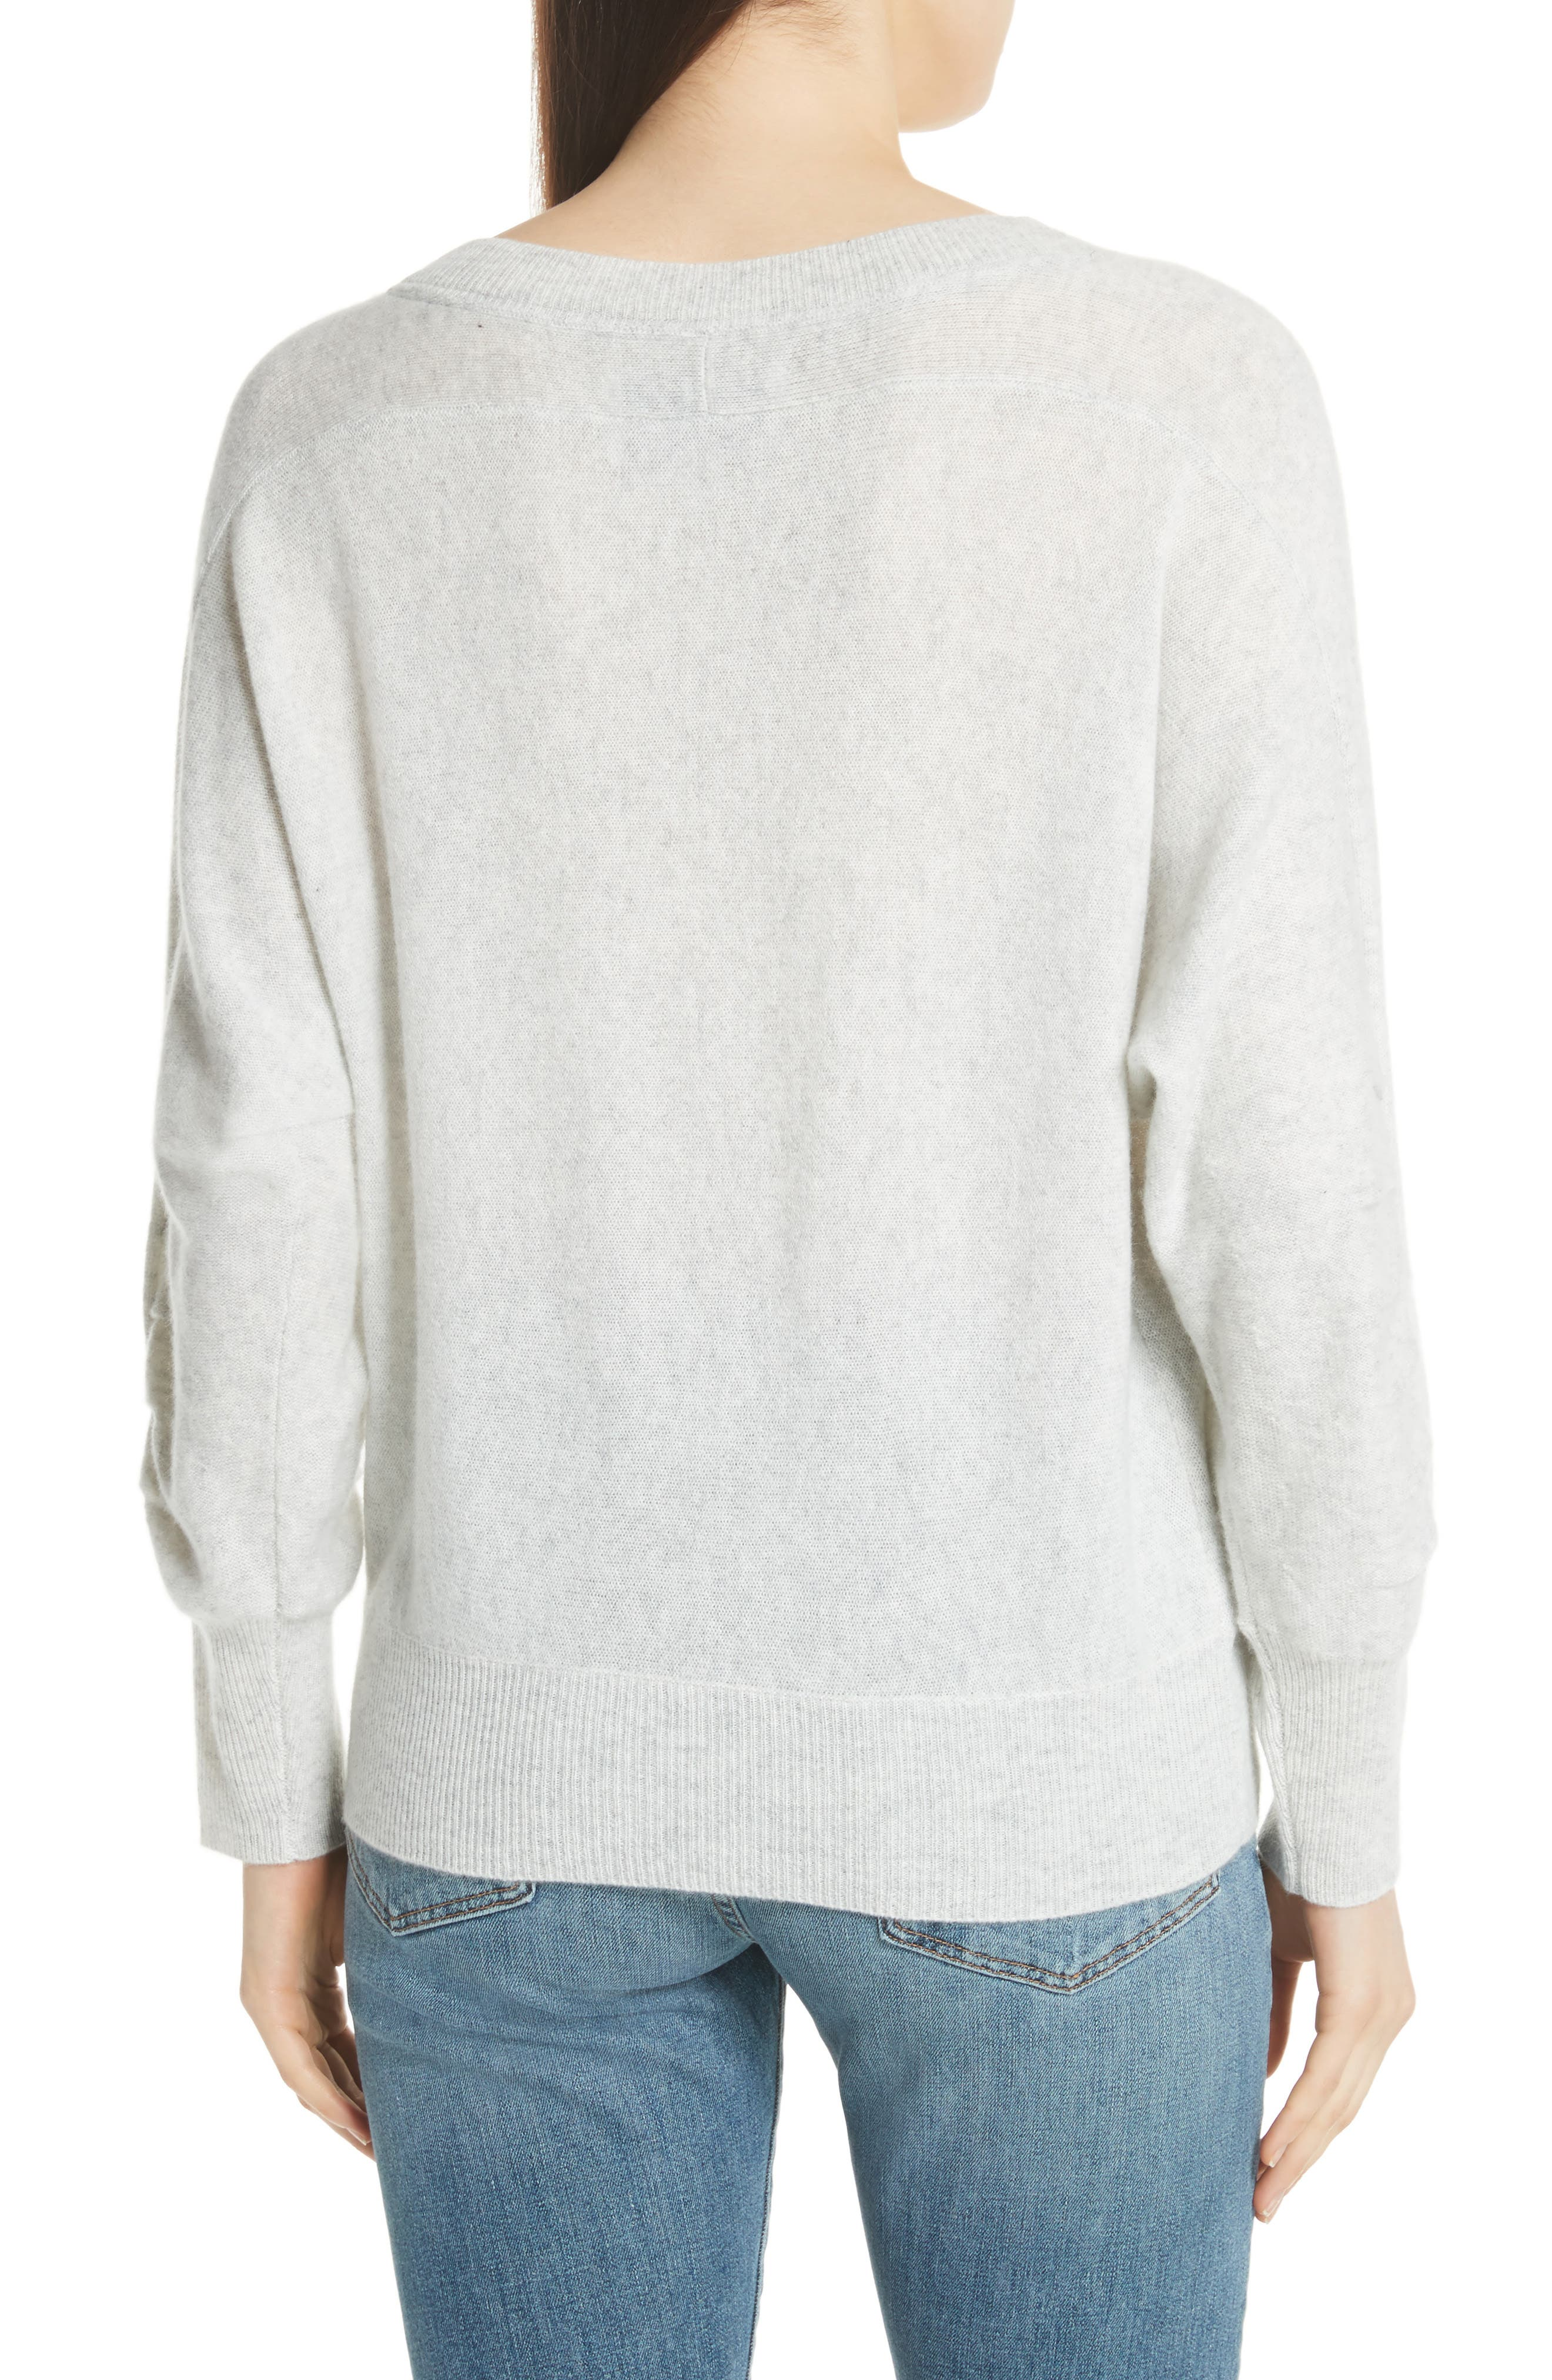 Weller Cashmere Sweater,                             Alternate thumbnail 3, color,